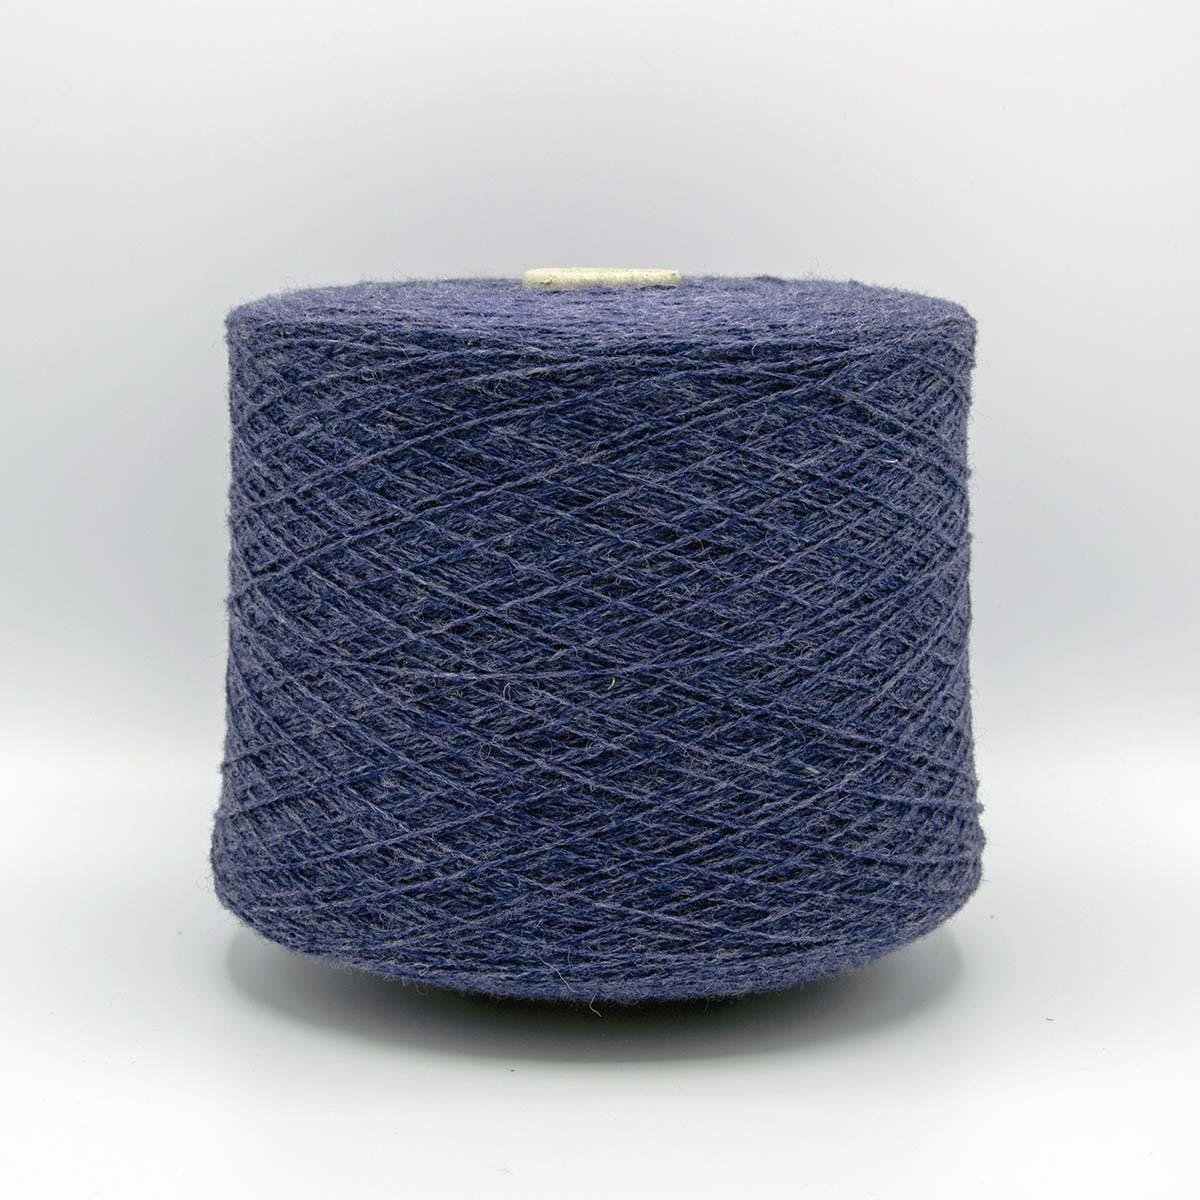 Knoll Yarns Supersoft - 113